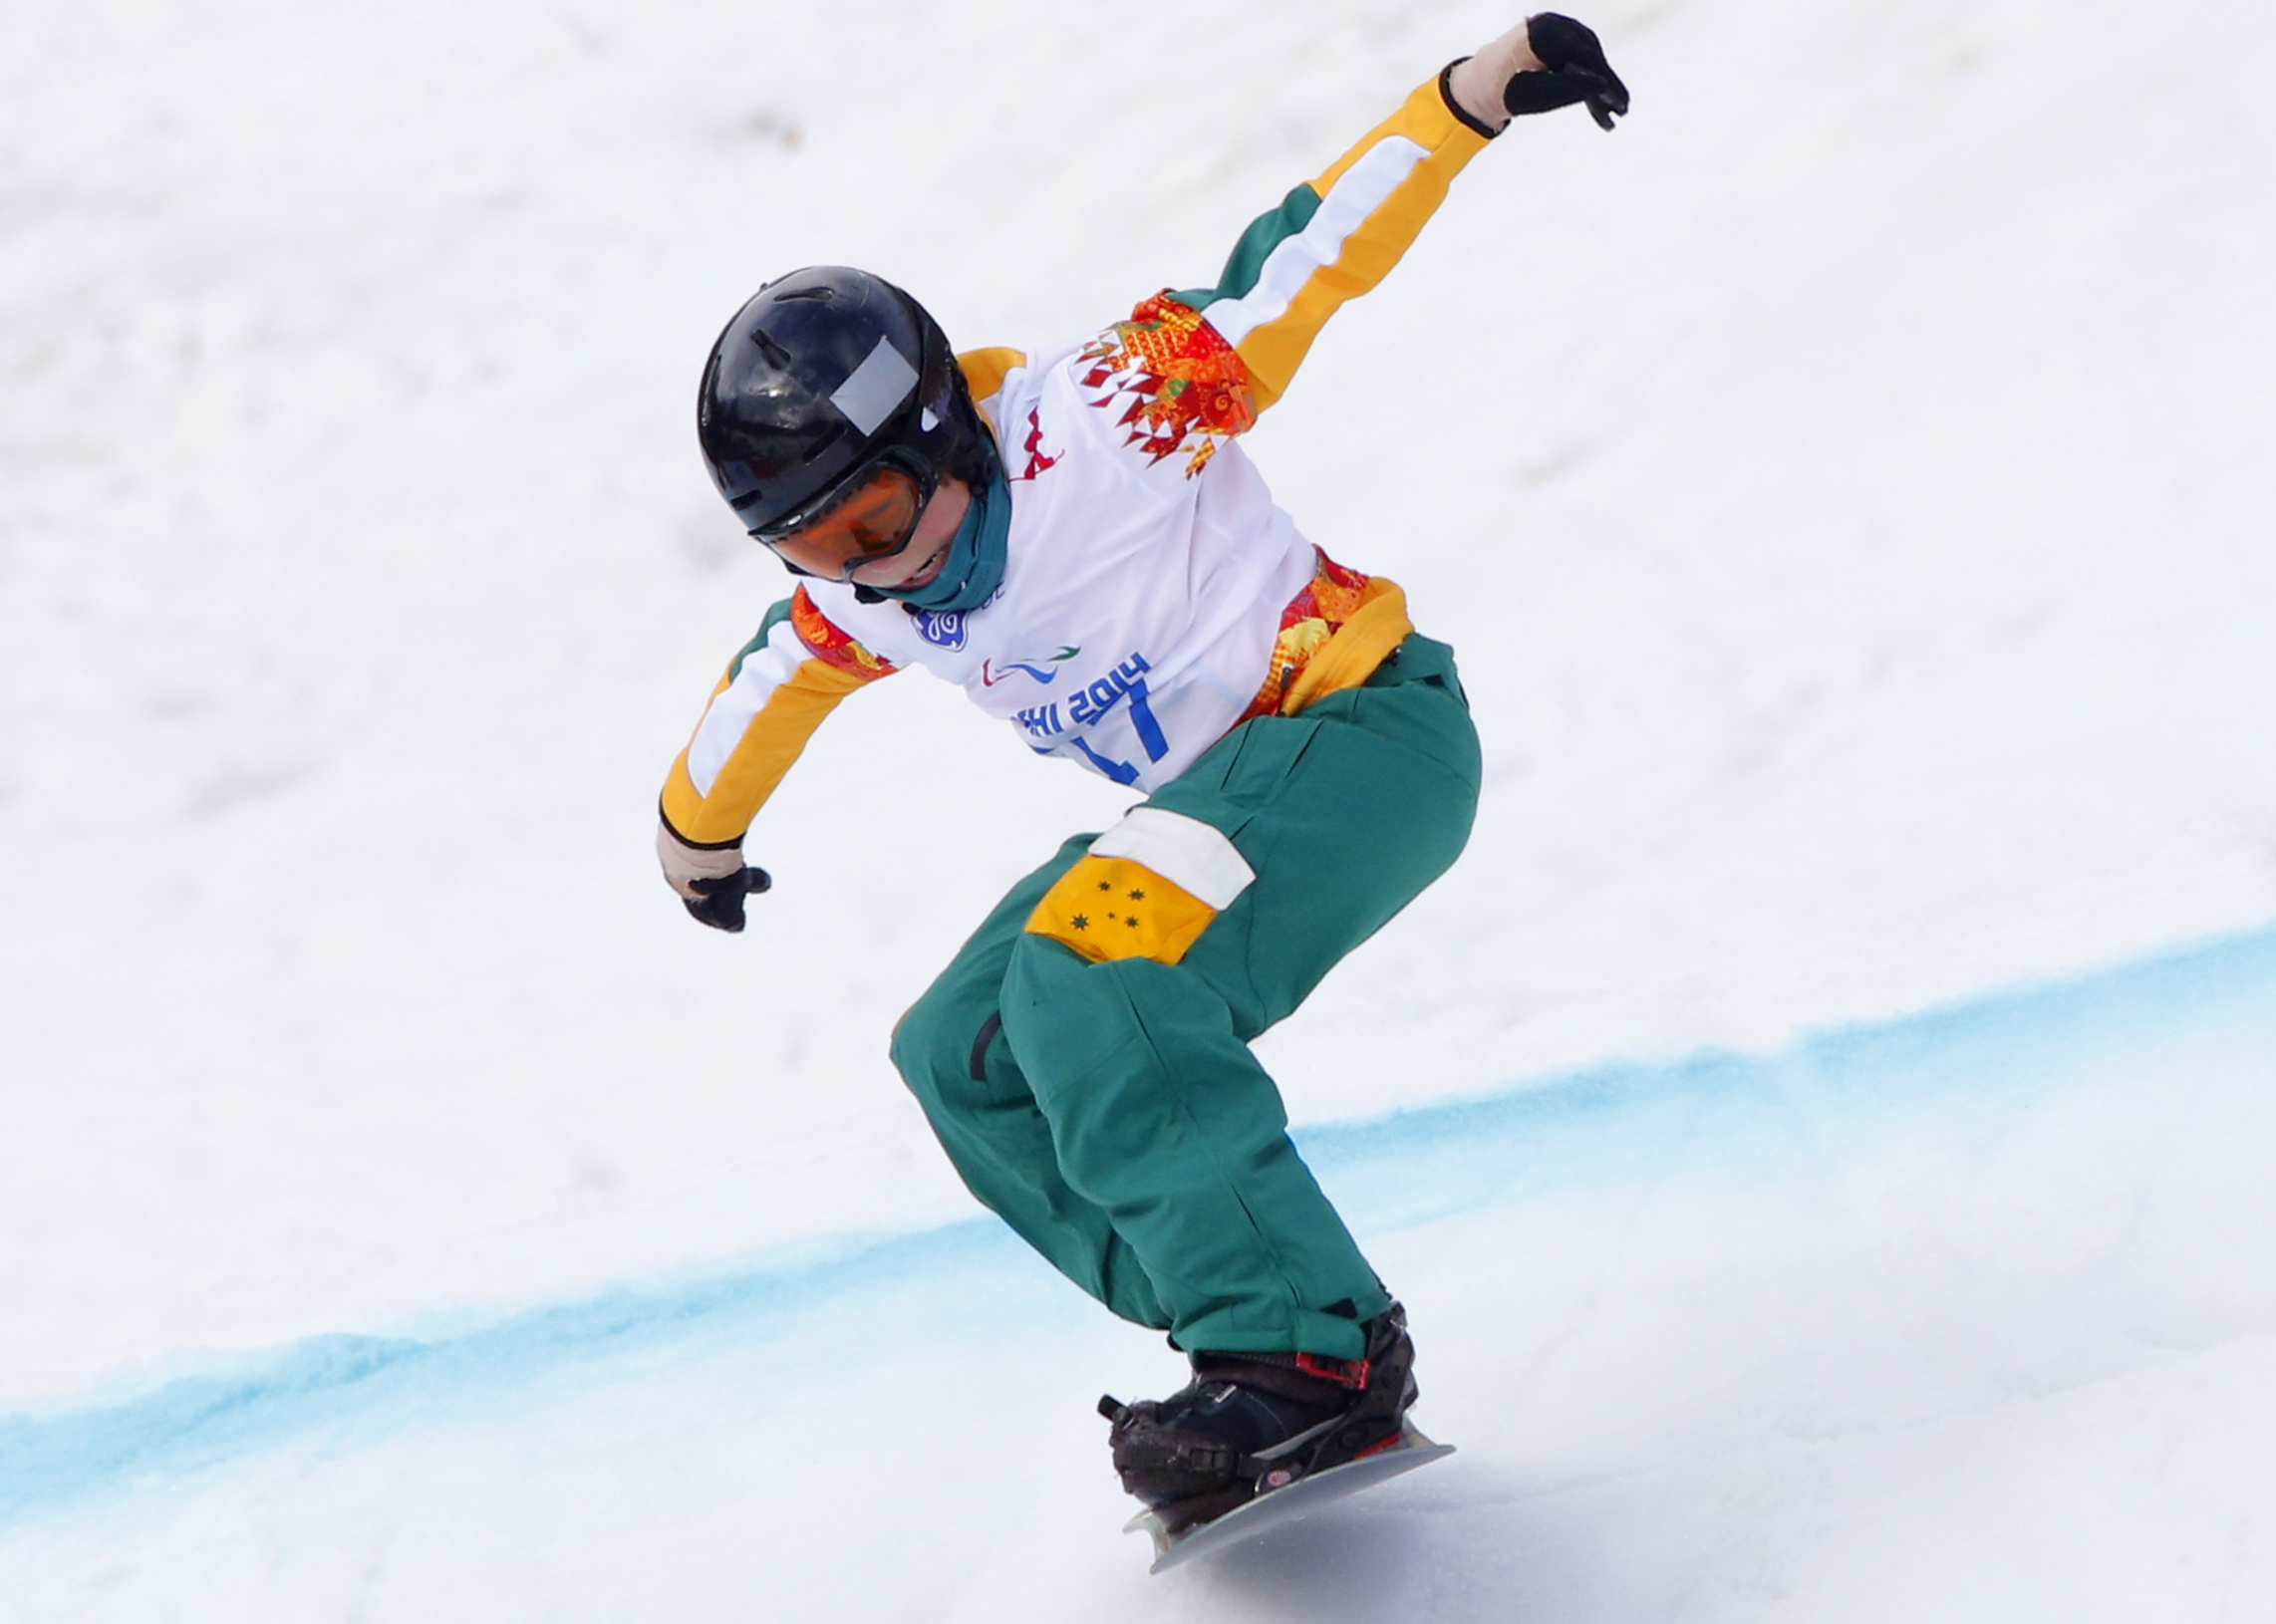 Ben Tudhope of Australia competes during the men's para-snowboard cross, standing event at the 2014 Winter Paralympic, Friday, March 14, 2014, in Krasnaya Polyana, Russia. (AP Photo/Dmitry Lovetsky)